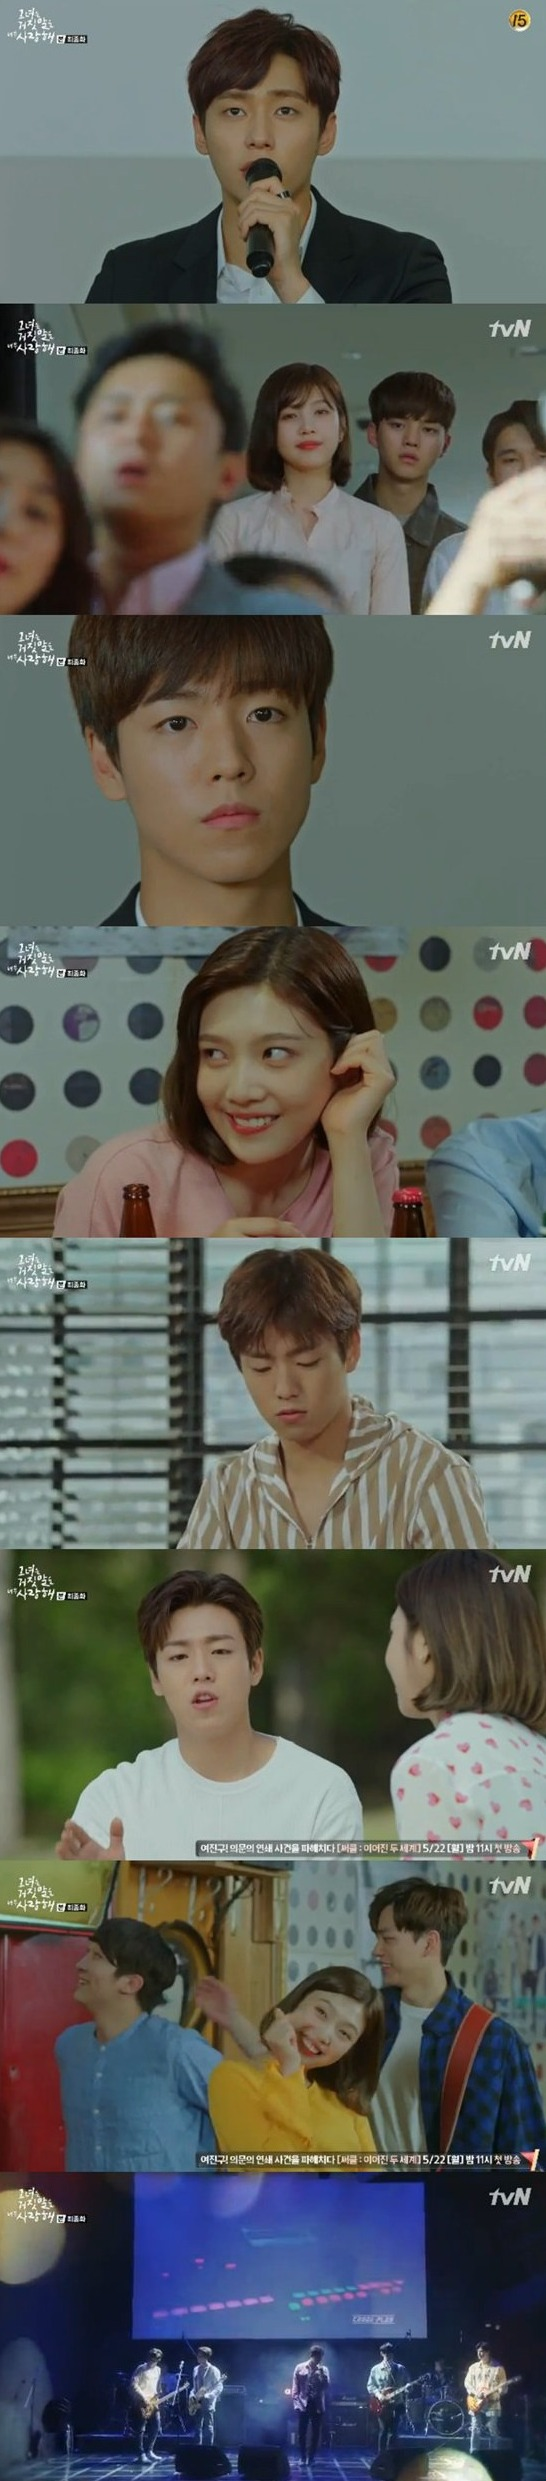 [Spoiler] Added final episode 16 captures for the Korean drama 'The Liar and His Lover'